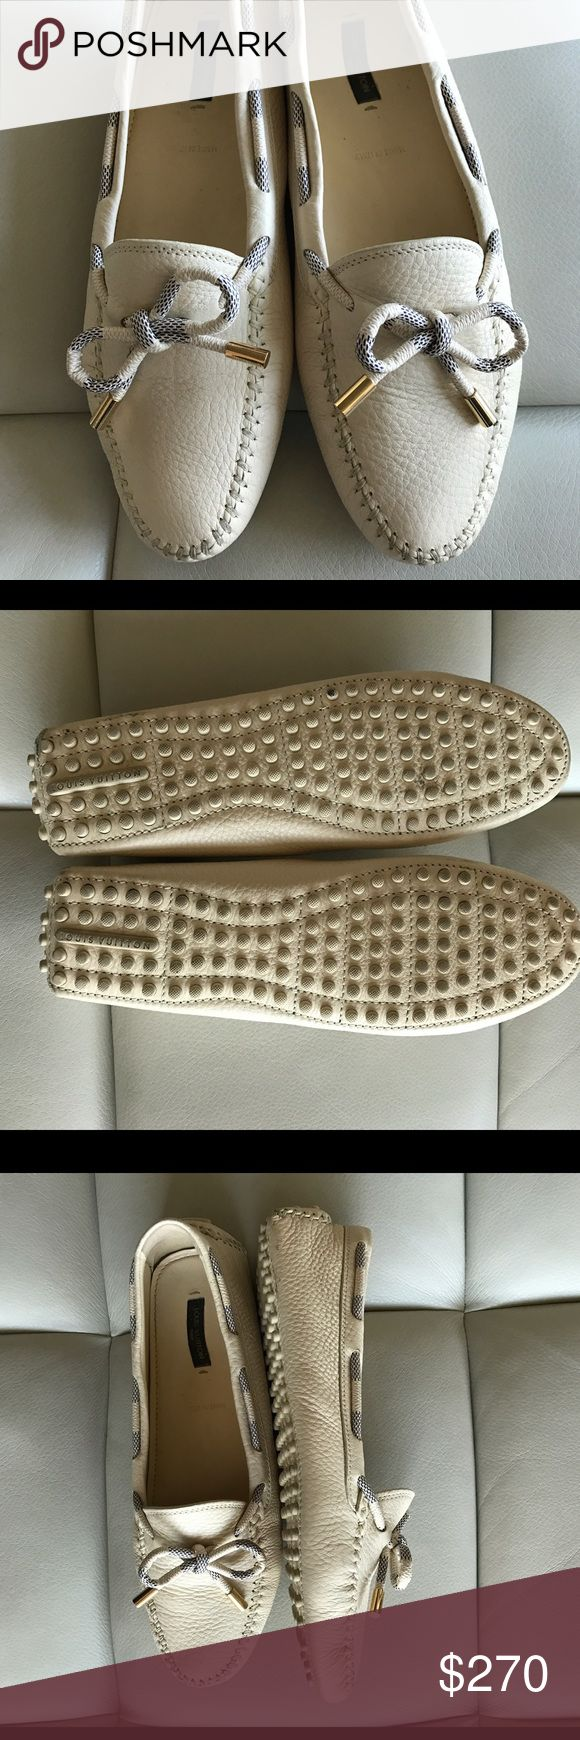 Louis Vuitton Loafers Like new, used only once. Louis Vuitton car shoe. Euro size 40,5 Louis Vuitton Shoes Flats & Loafers